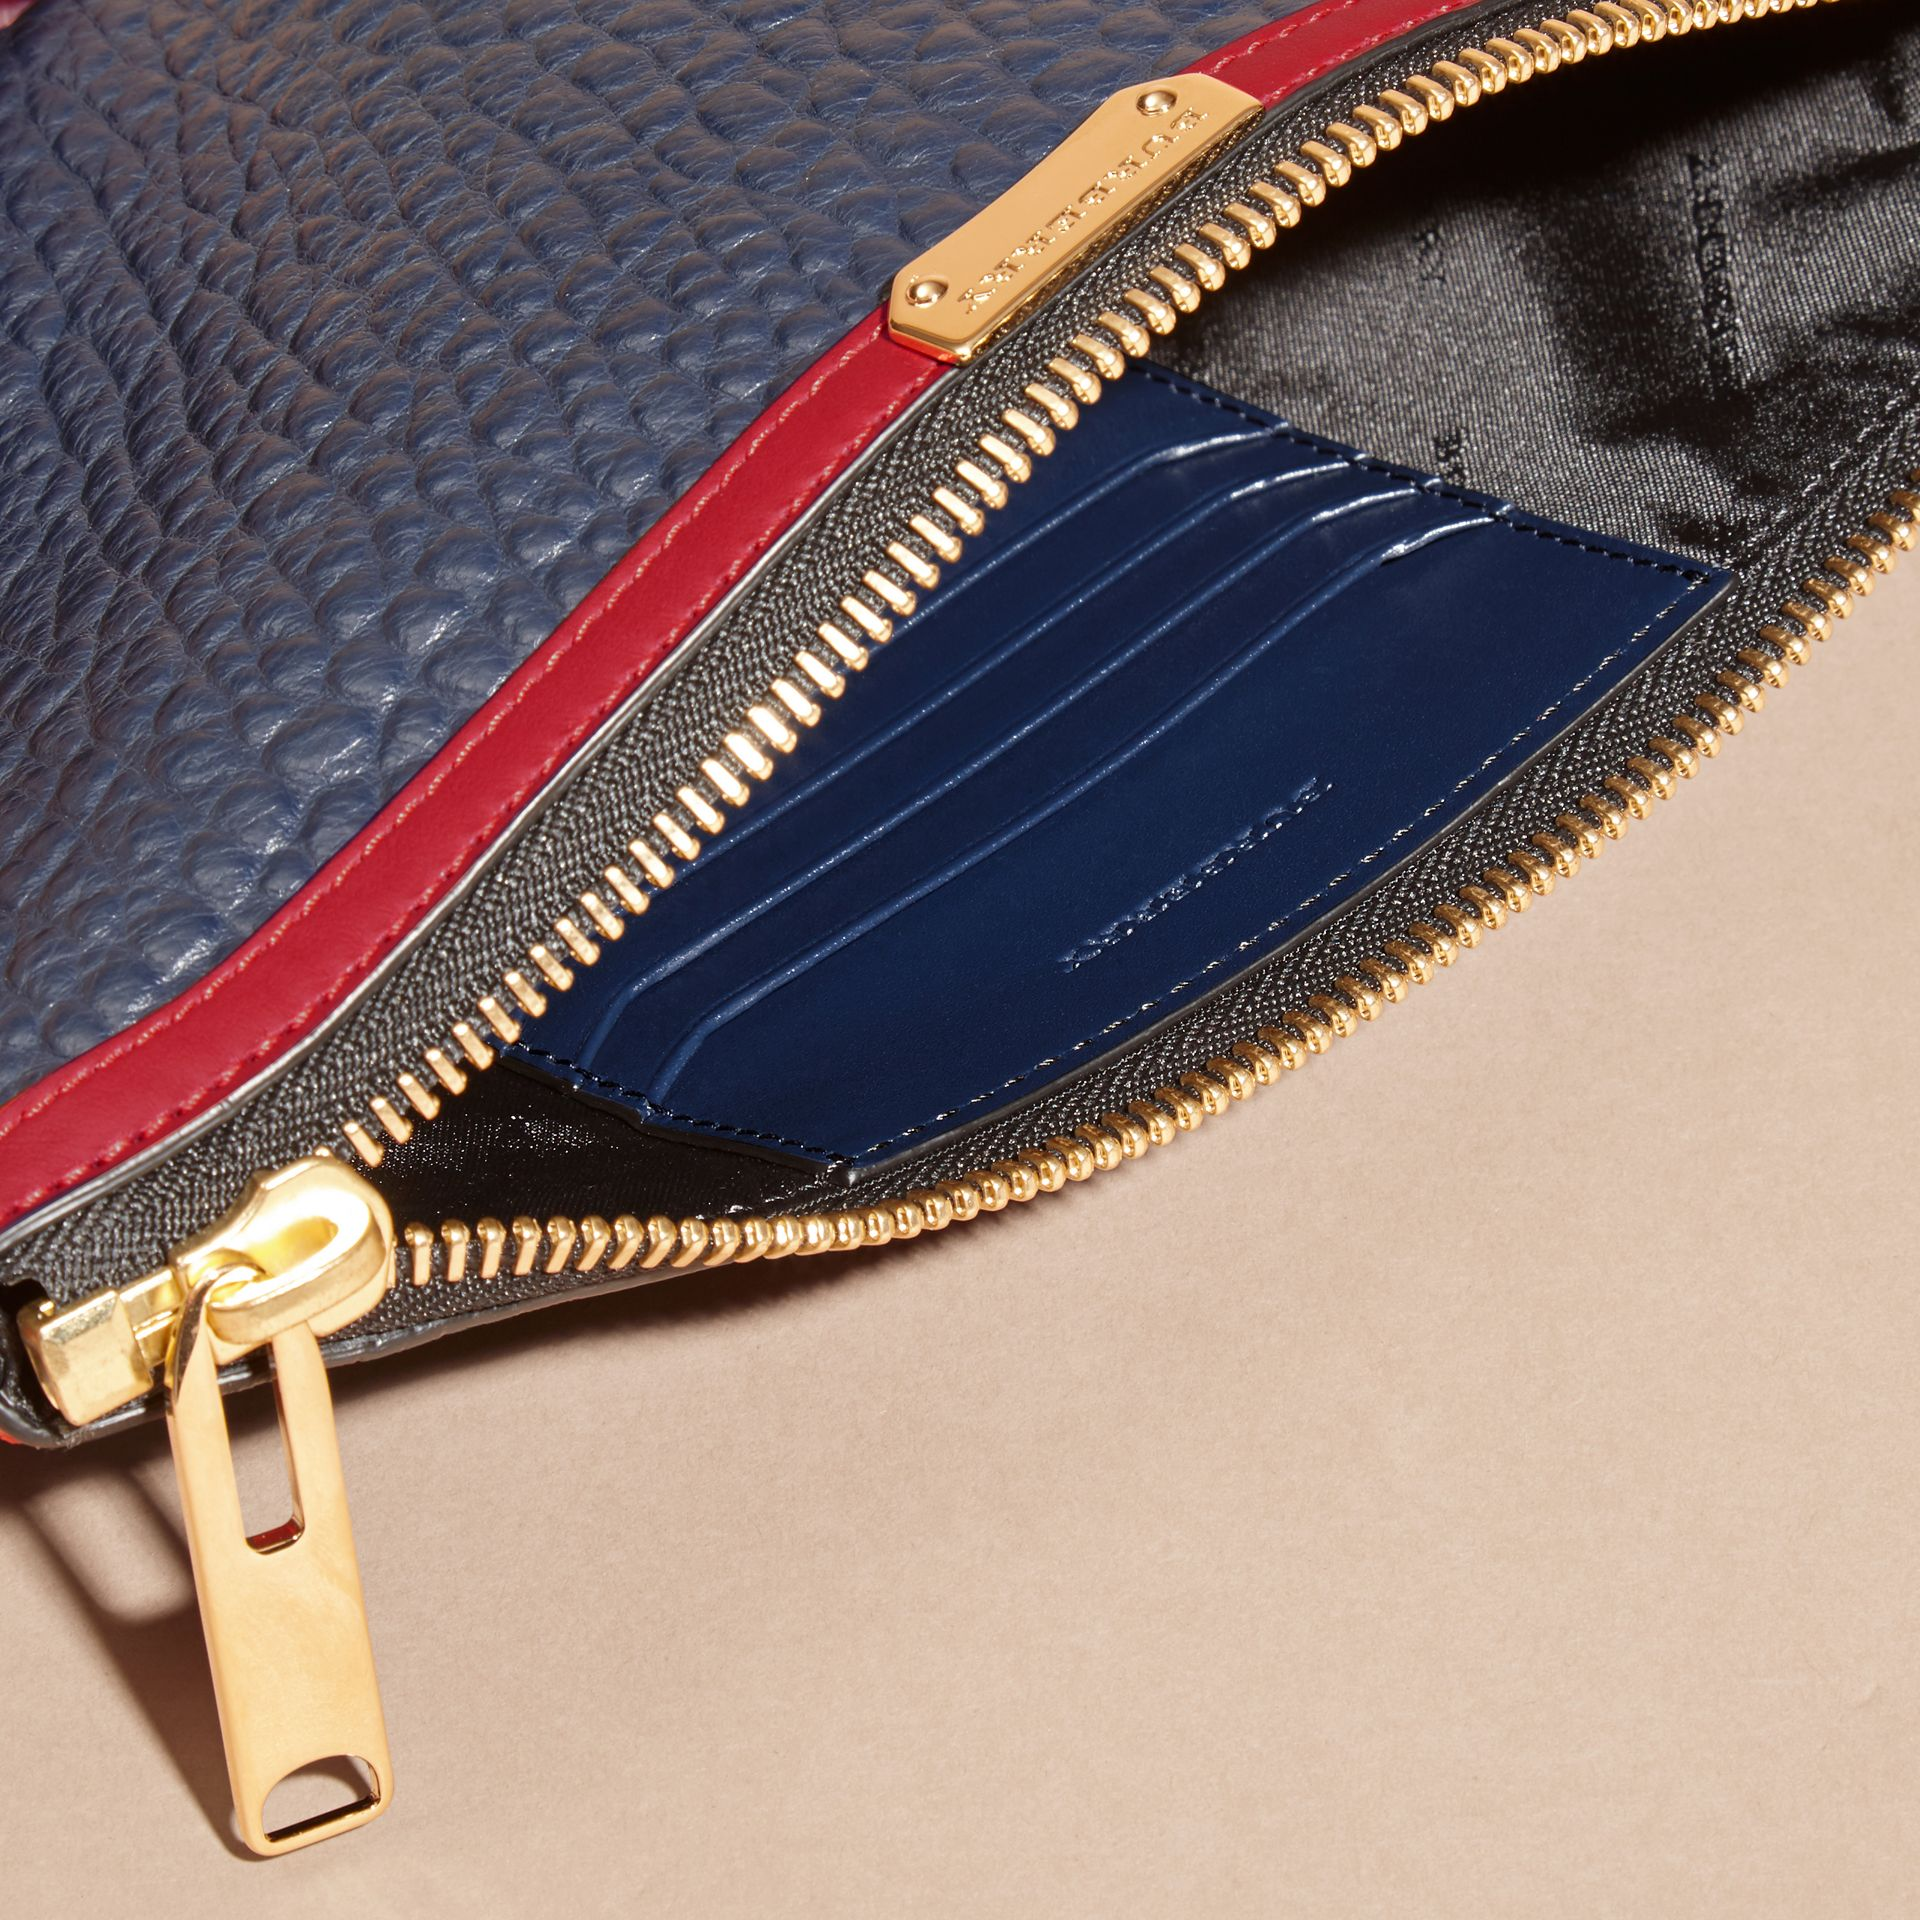 Blue crbn/parade red Contrast Border Signature Grain Leather Clutch Bag - gallery image 6